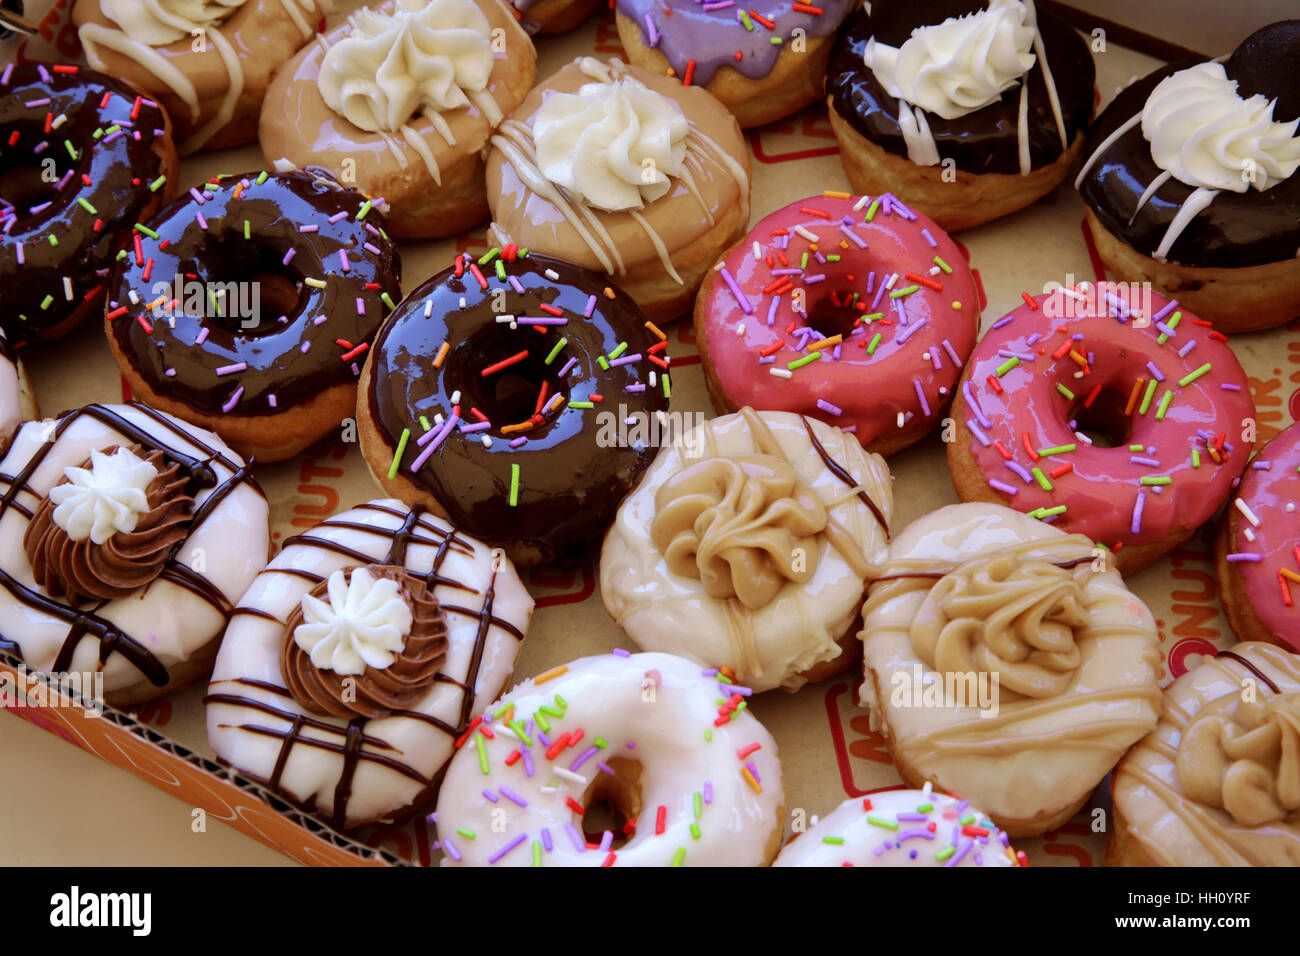 Sugar coated colorful doughnuts - Stock Image